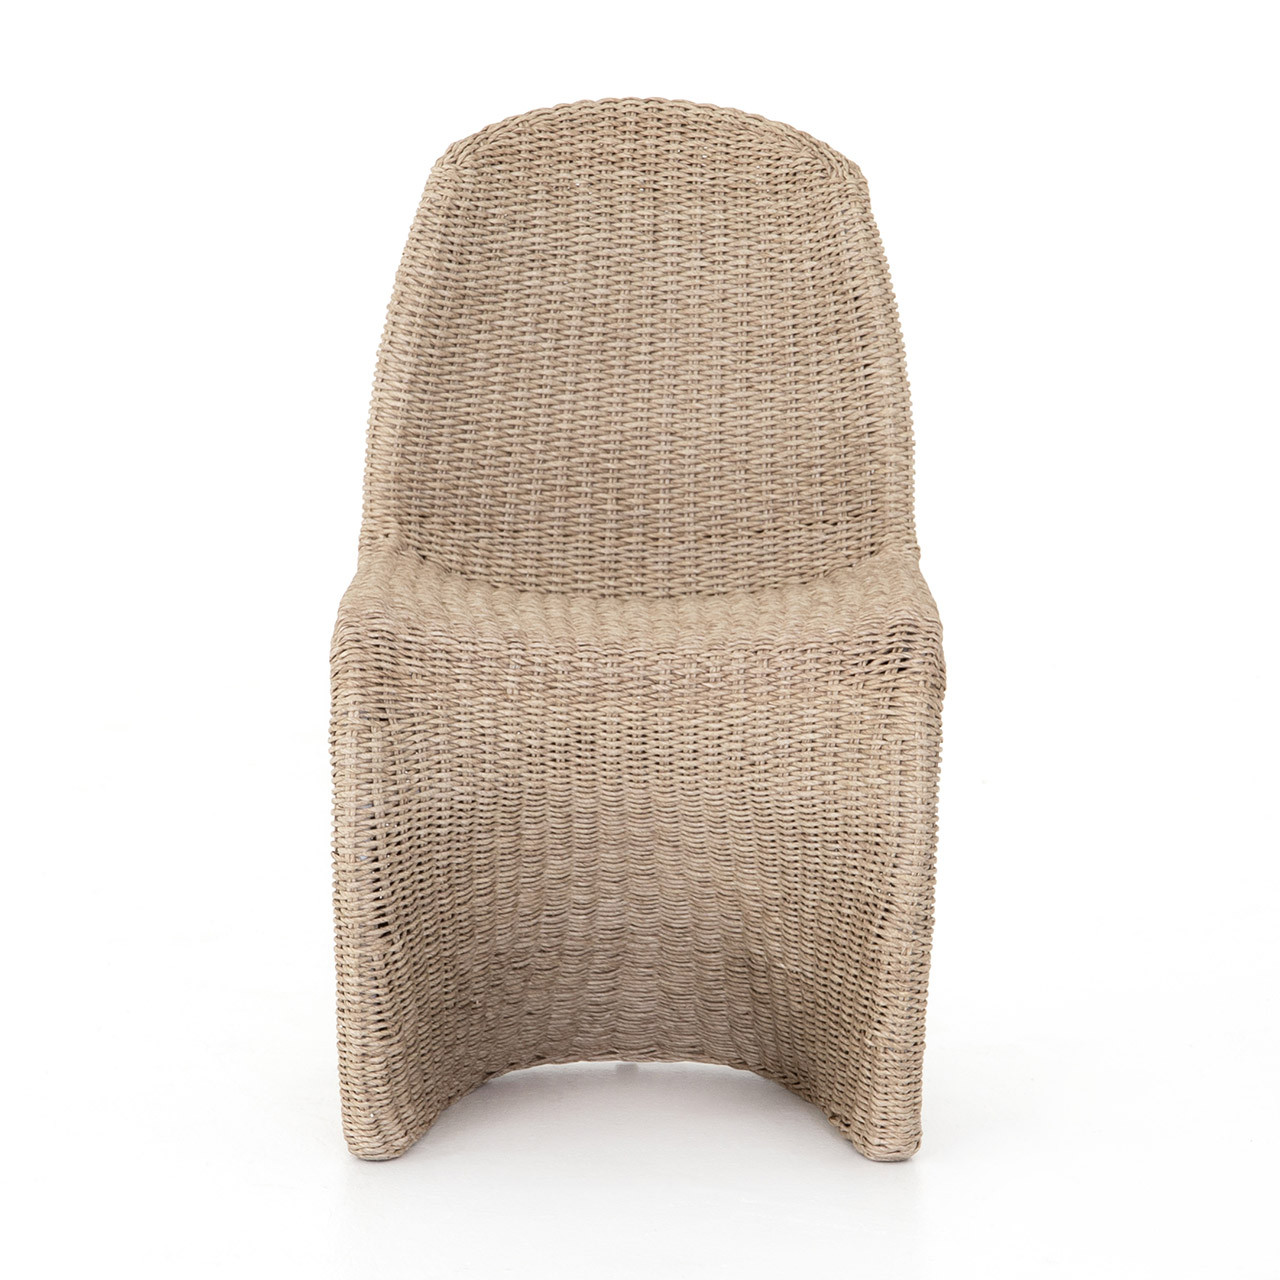 Cantilever Outdoor Woven Dining Chair